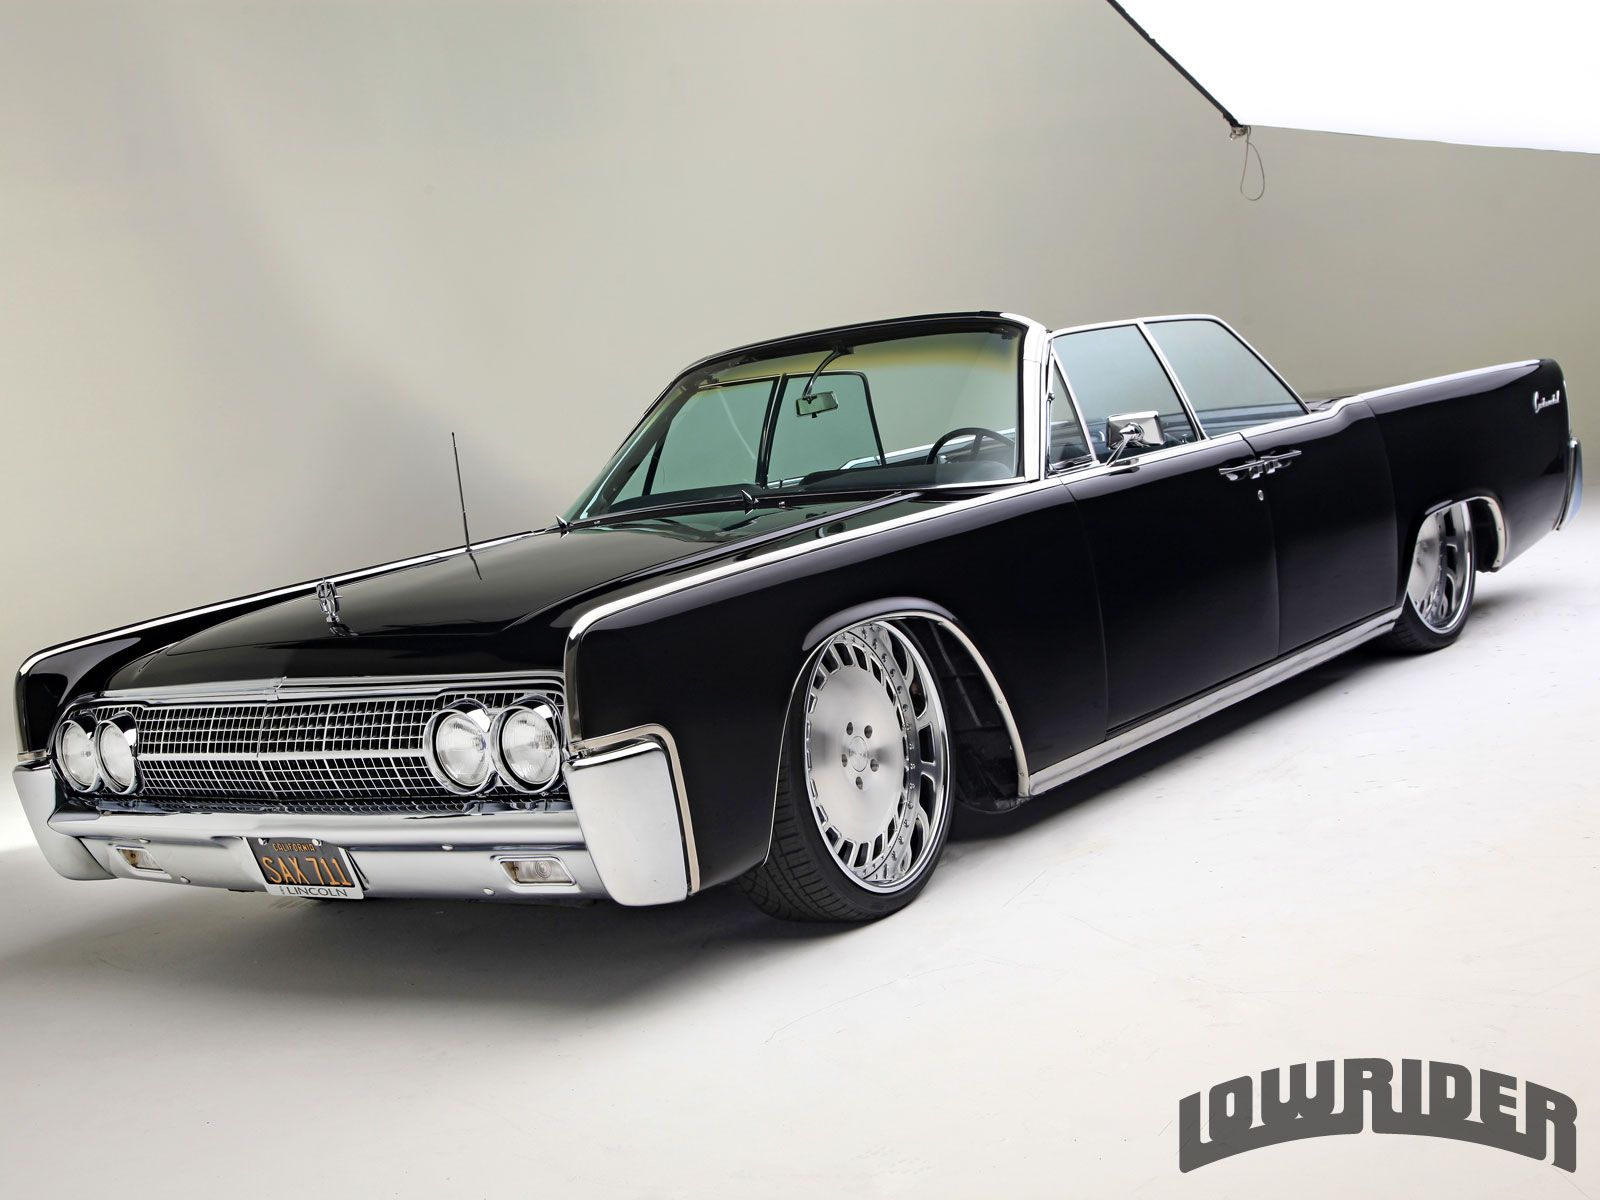 Check out Jerry Mojica's 1963 Lincoln Continental Convertible. This